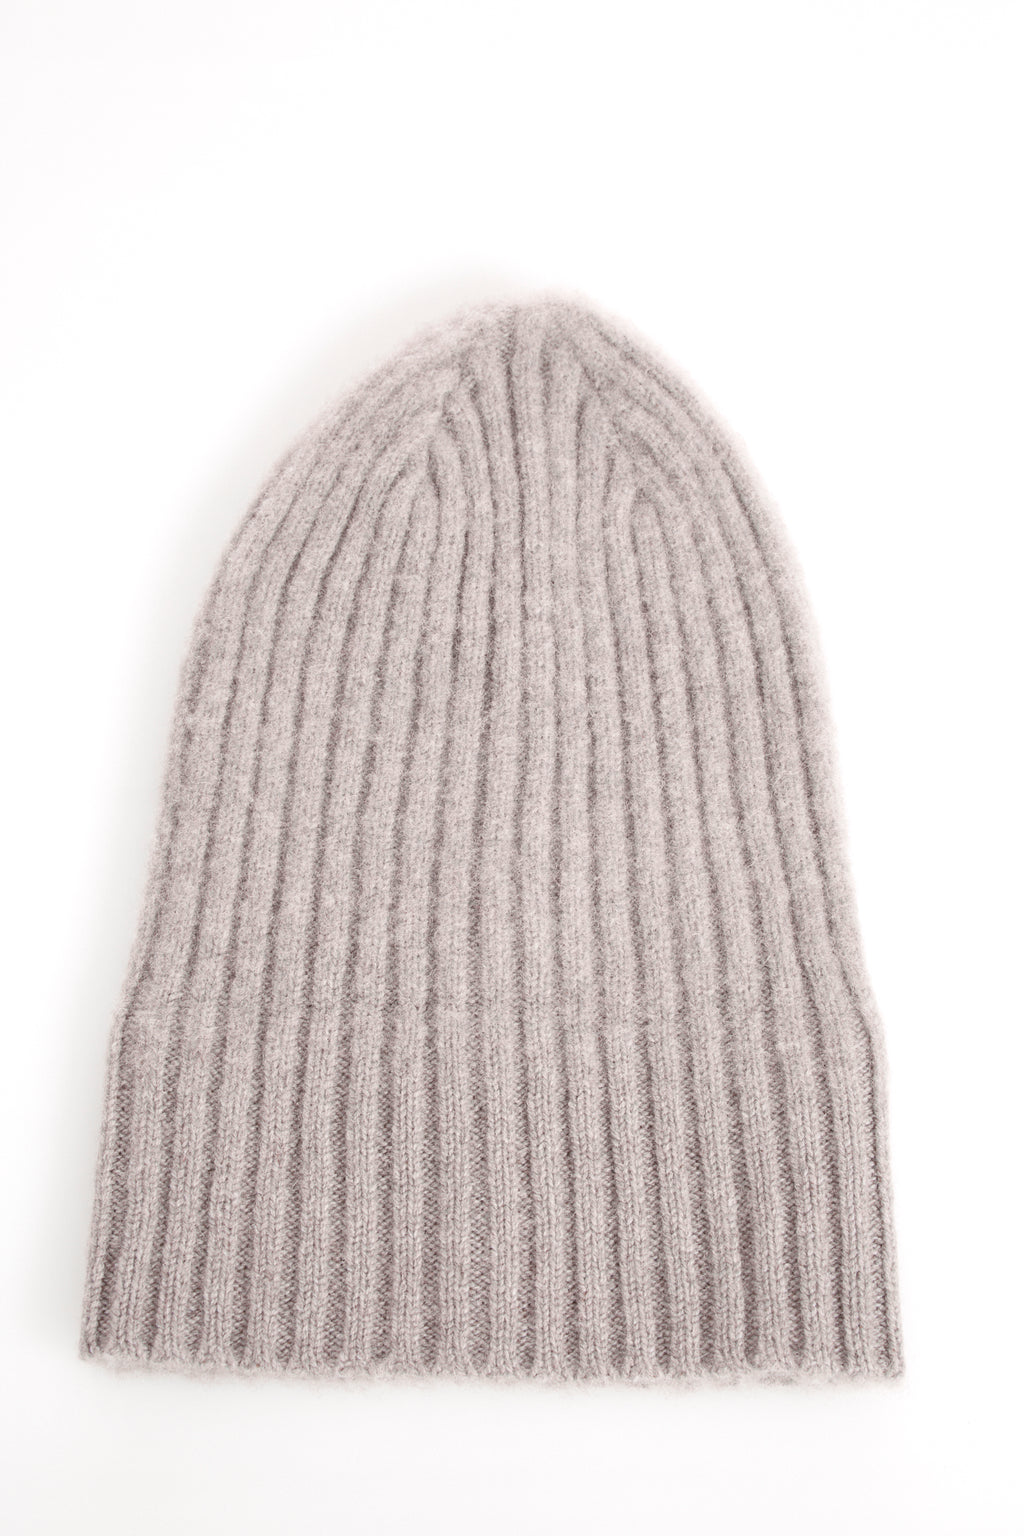 ace30dfc698 Drake s Grey Ribbed Merino Wool Hat – LALONDE s